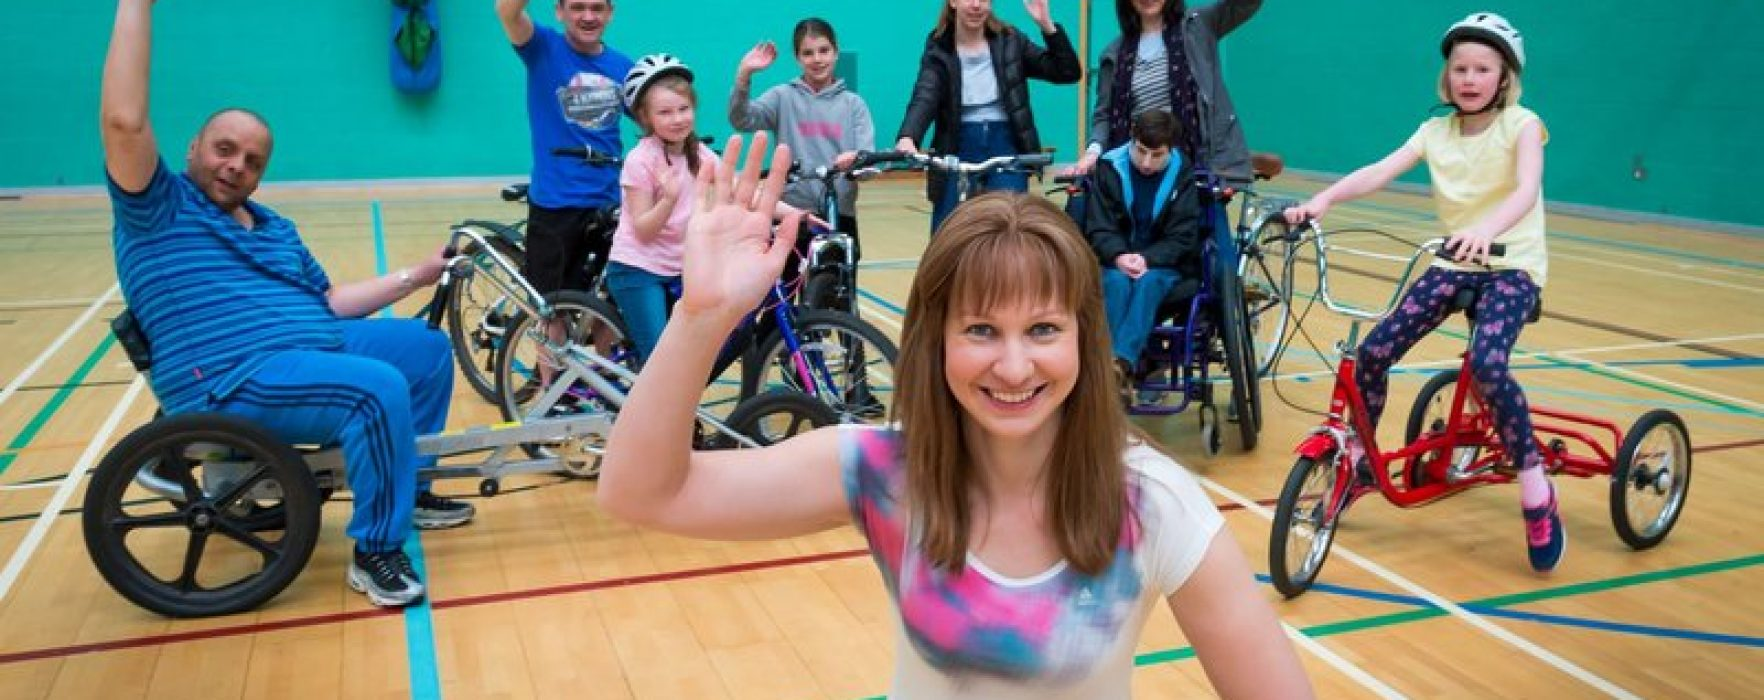 Former Cyclist Joanna Rowsell Shand talks winning Olympic Gold and getting involved with the Ride Rochdale Event